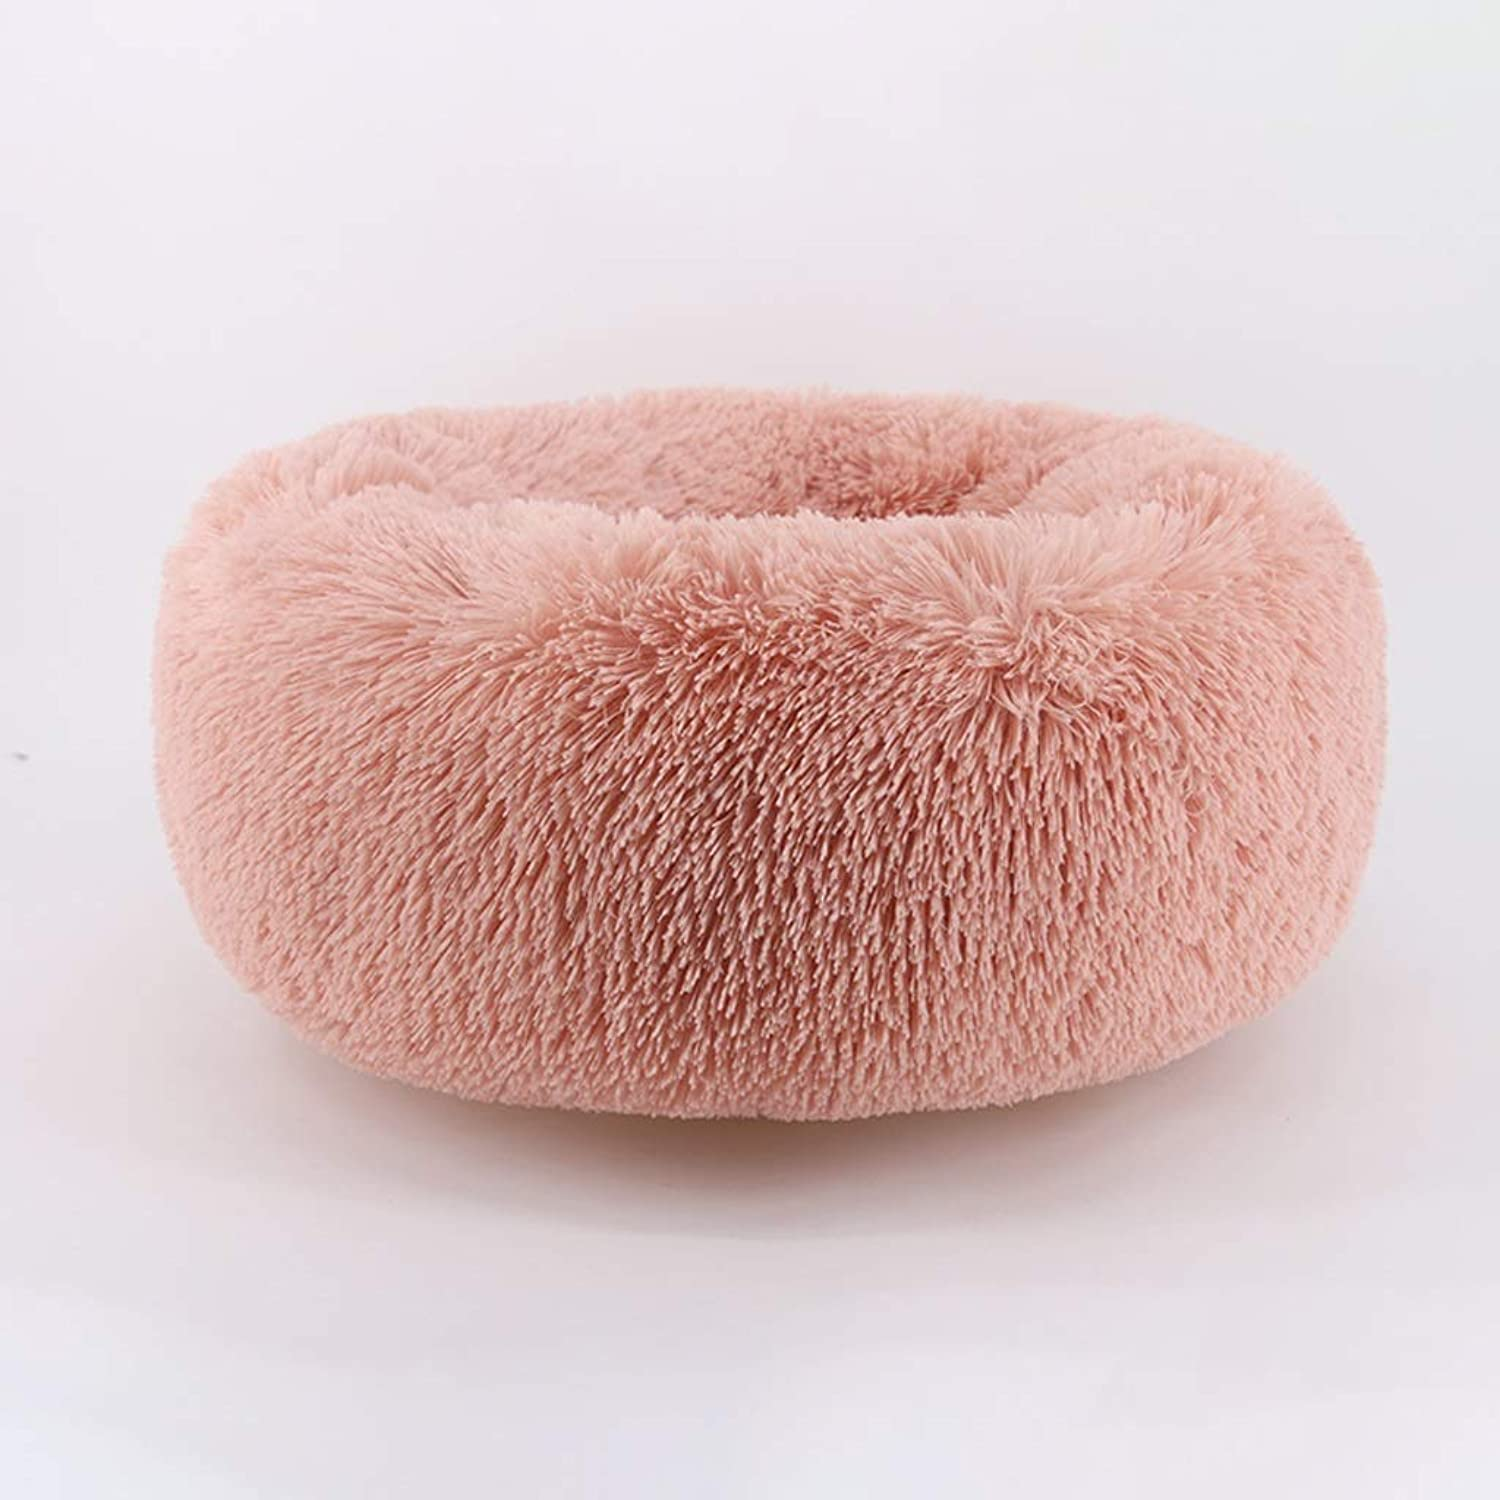 Onnear Modern Soft Plush Round Pet Bed for Cats or Small Dogs, Self Warming and Breathable Pet Bed Premium,Warmth and Security (color   Pink, Size   L)